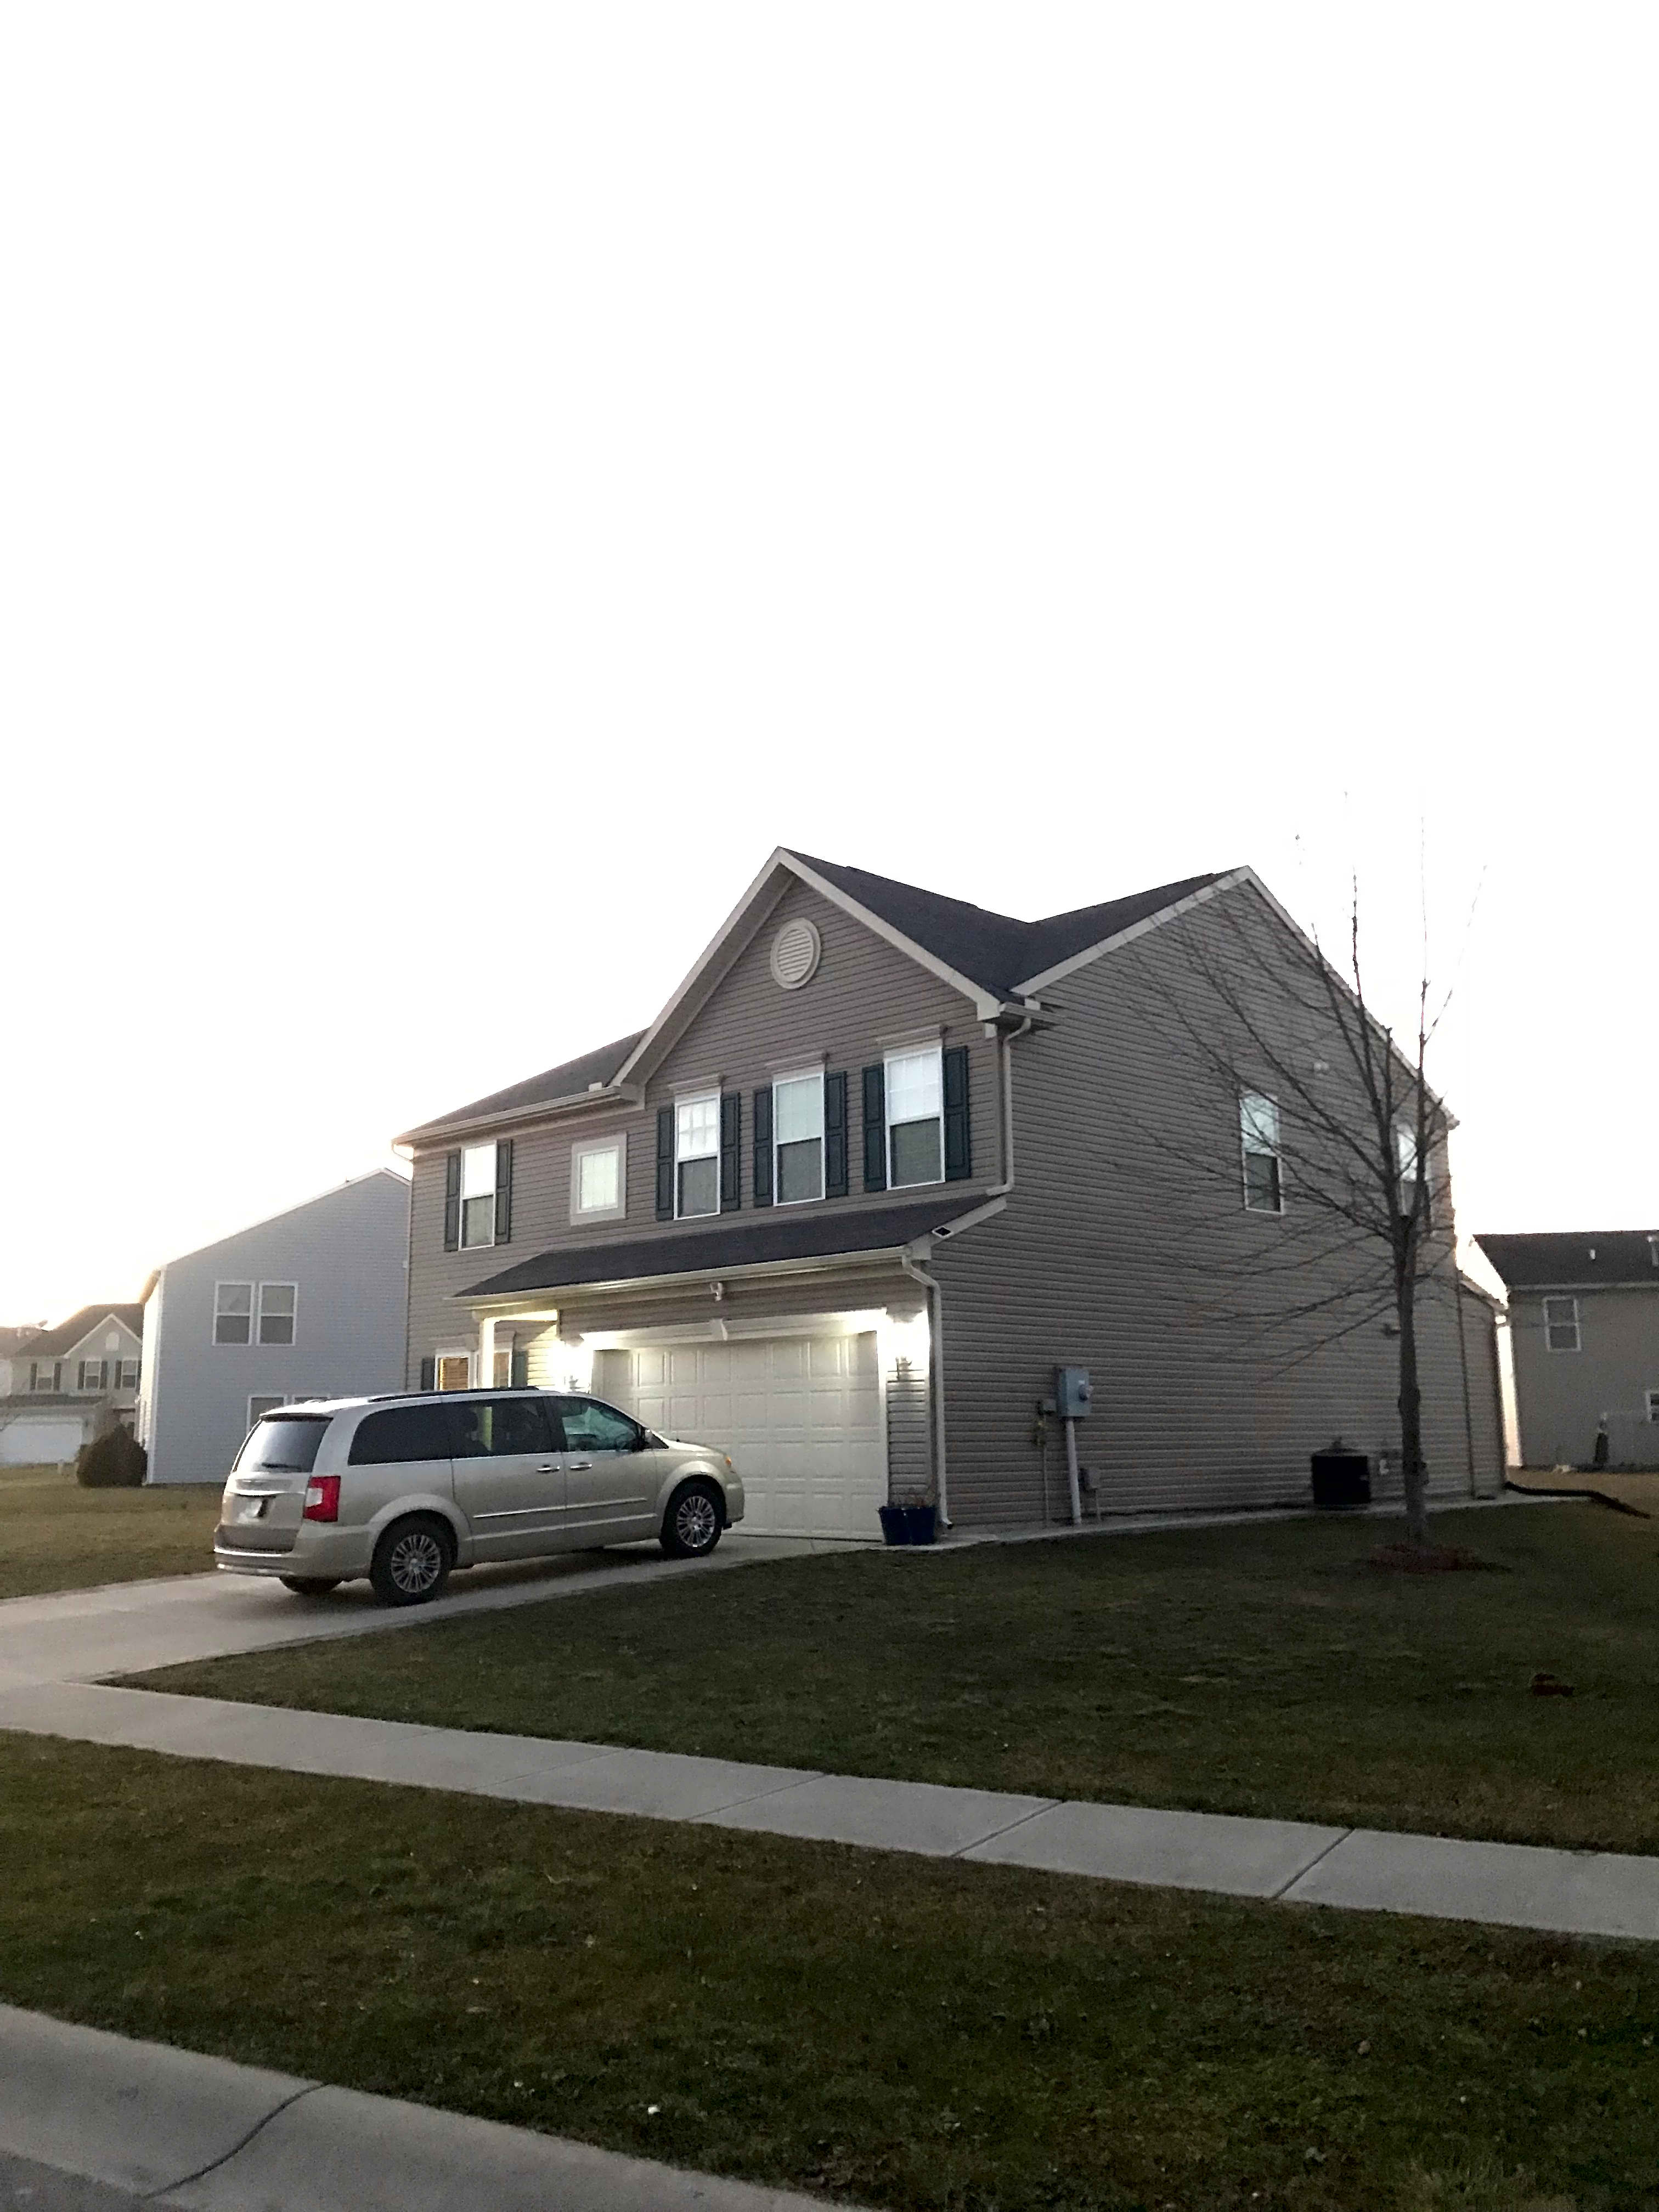 House for Rent in Whiteland